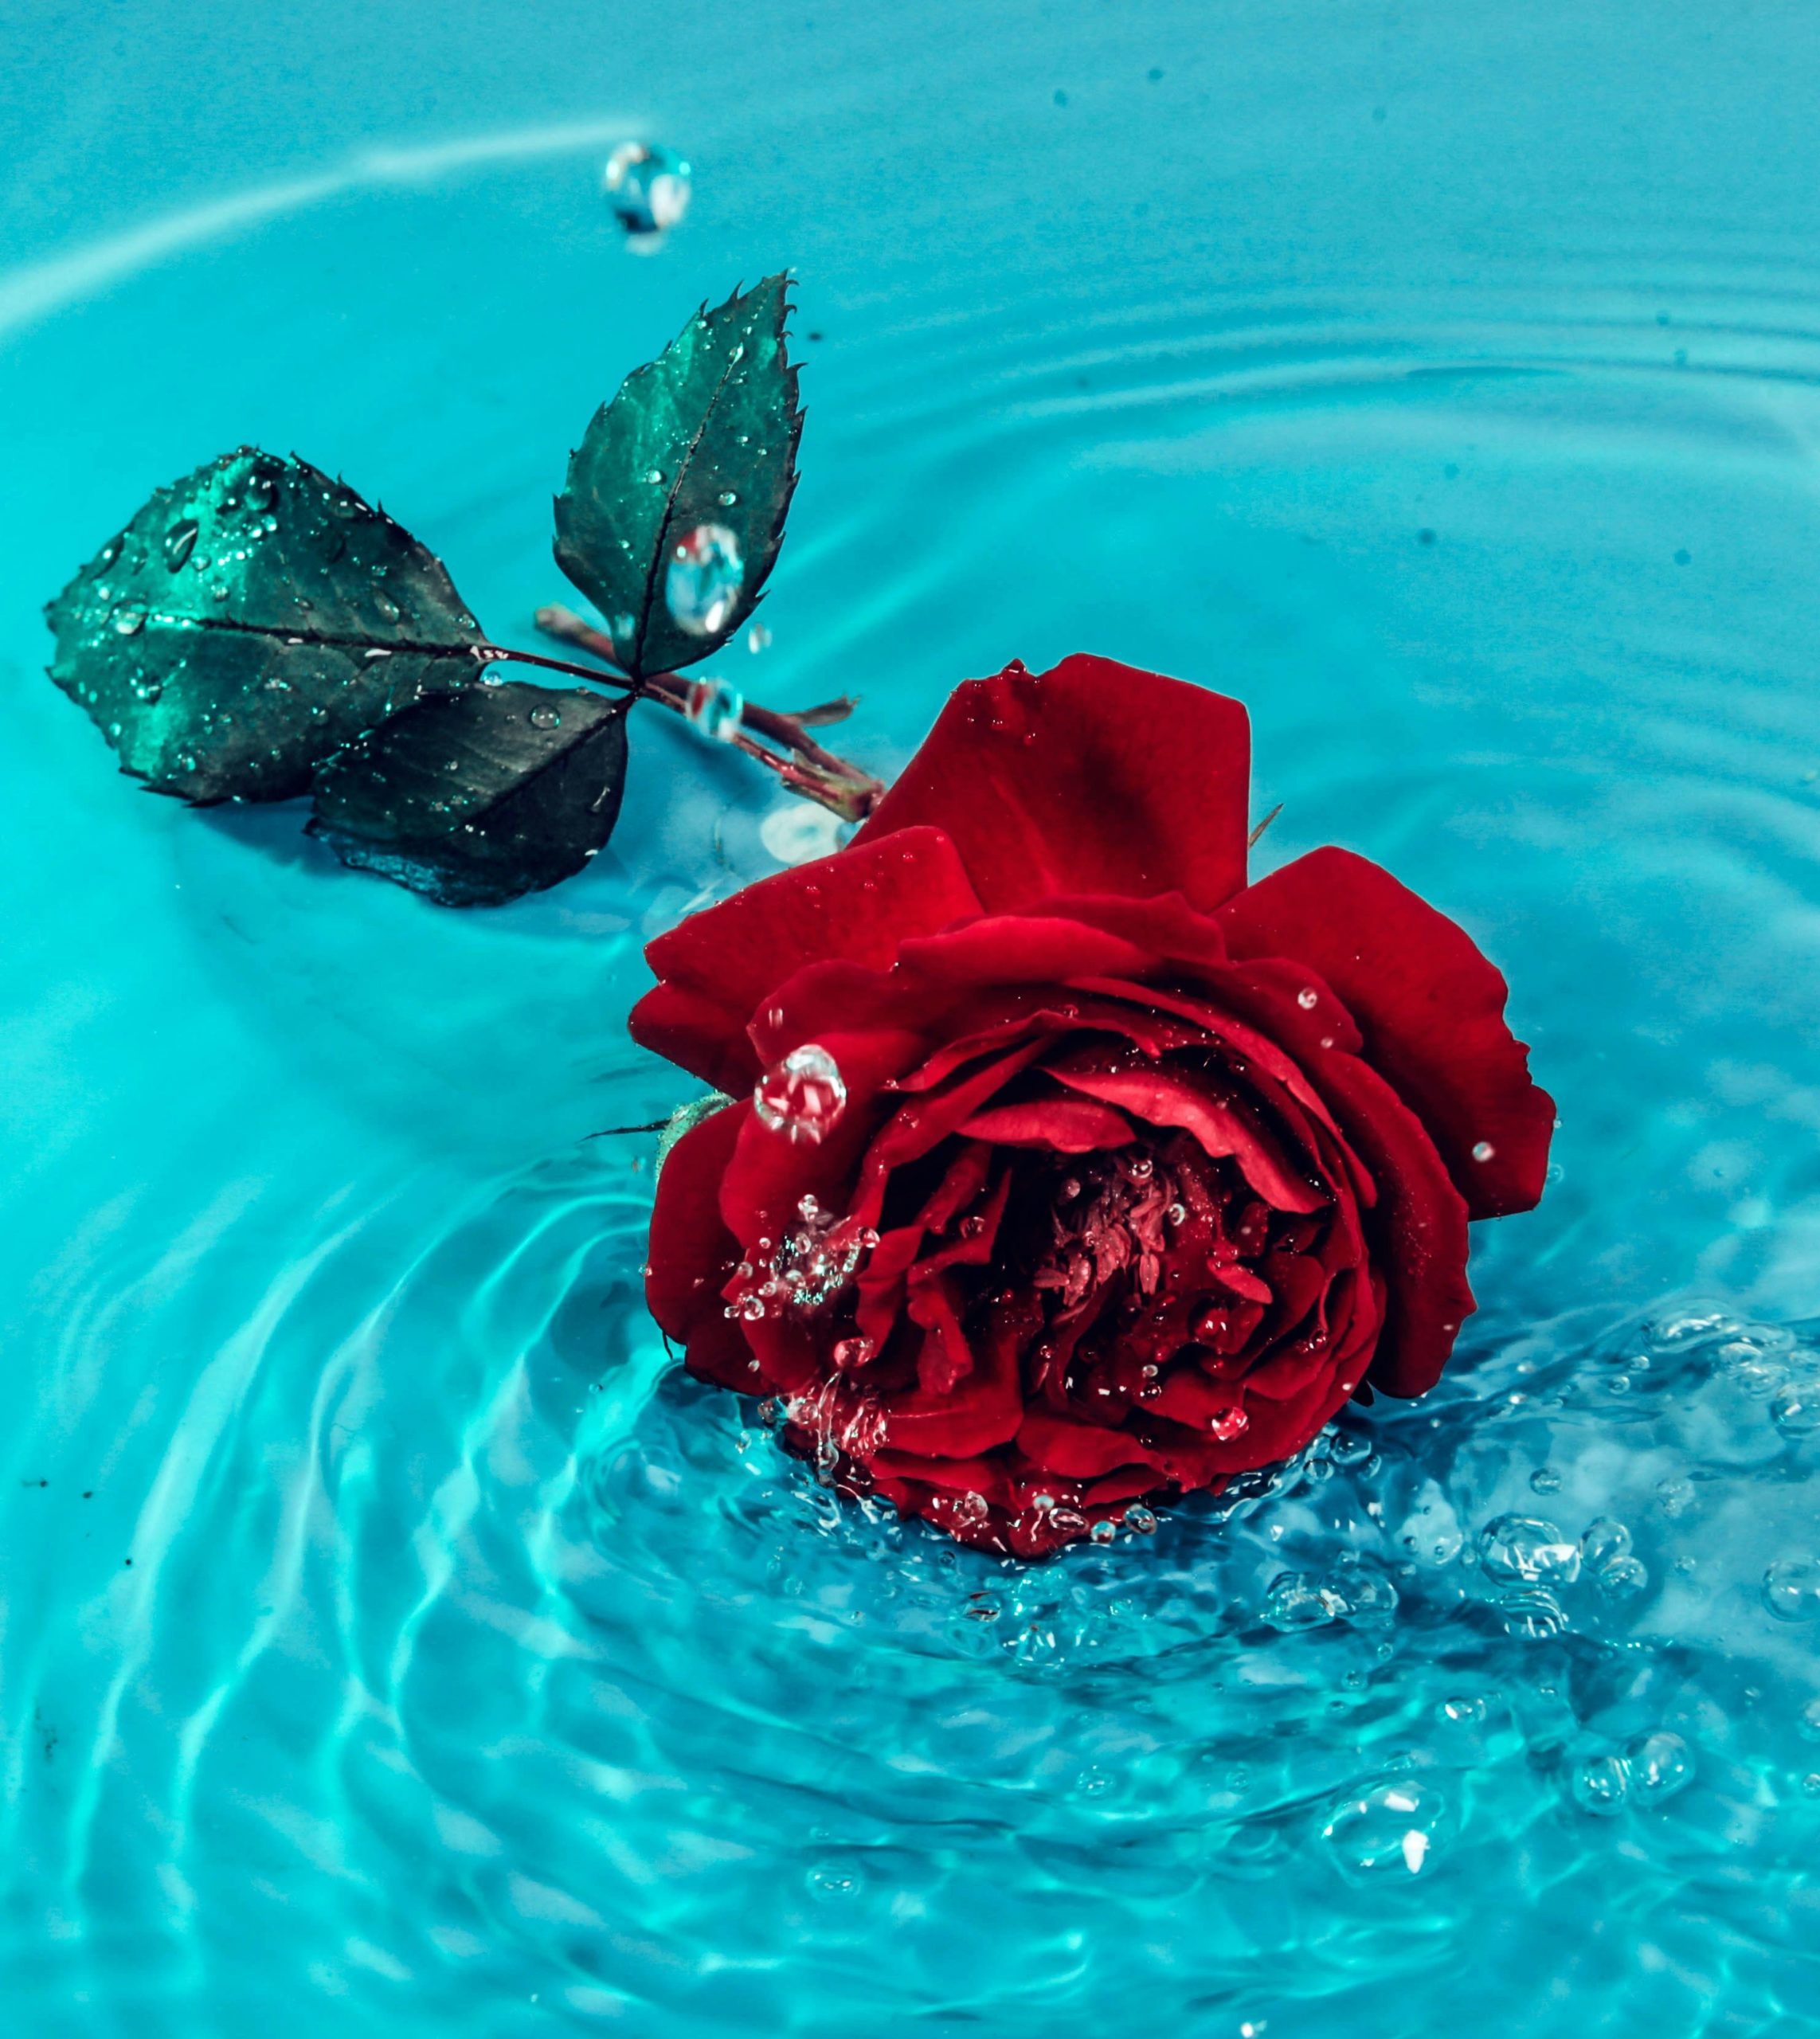 Rose Day 7Th February 2021/Rose Quotes/Rose Hd Image Download/Rose Gif Image/ Rose Days Wishes